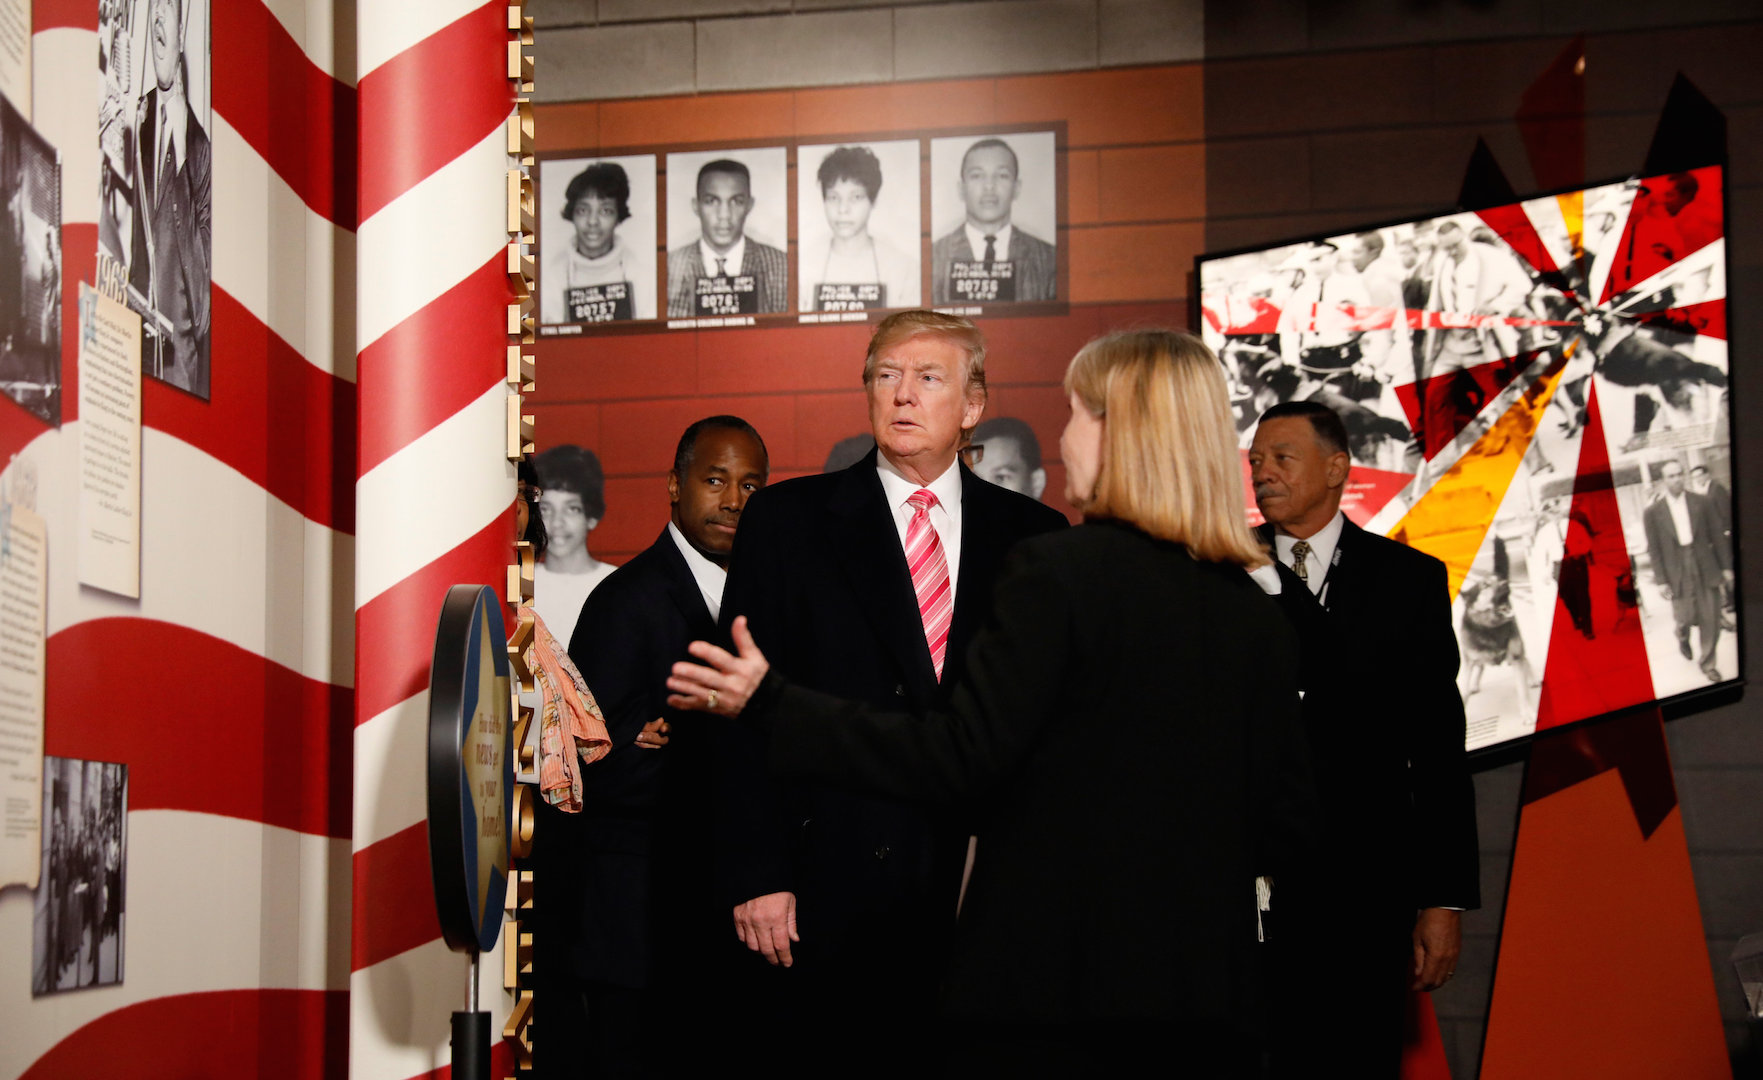 Trump ignores backlash, visits Mississippi Civil Rights Museum and praises civil rights leaders